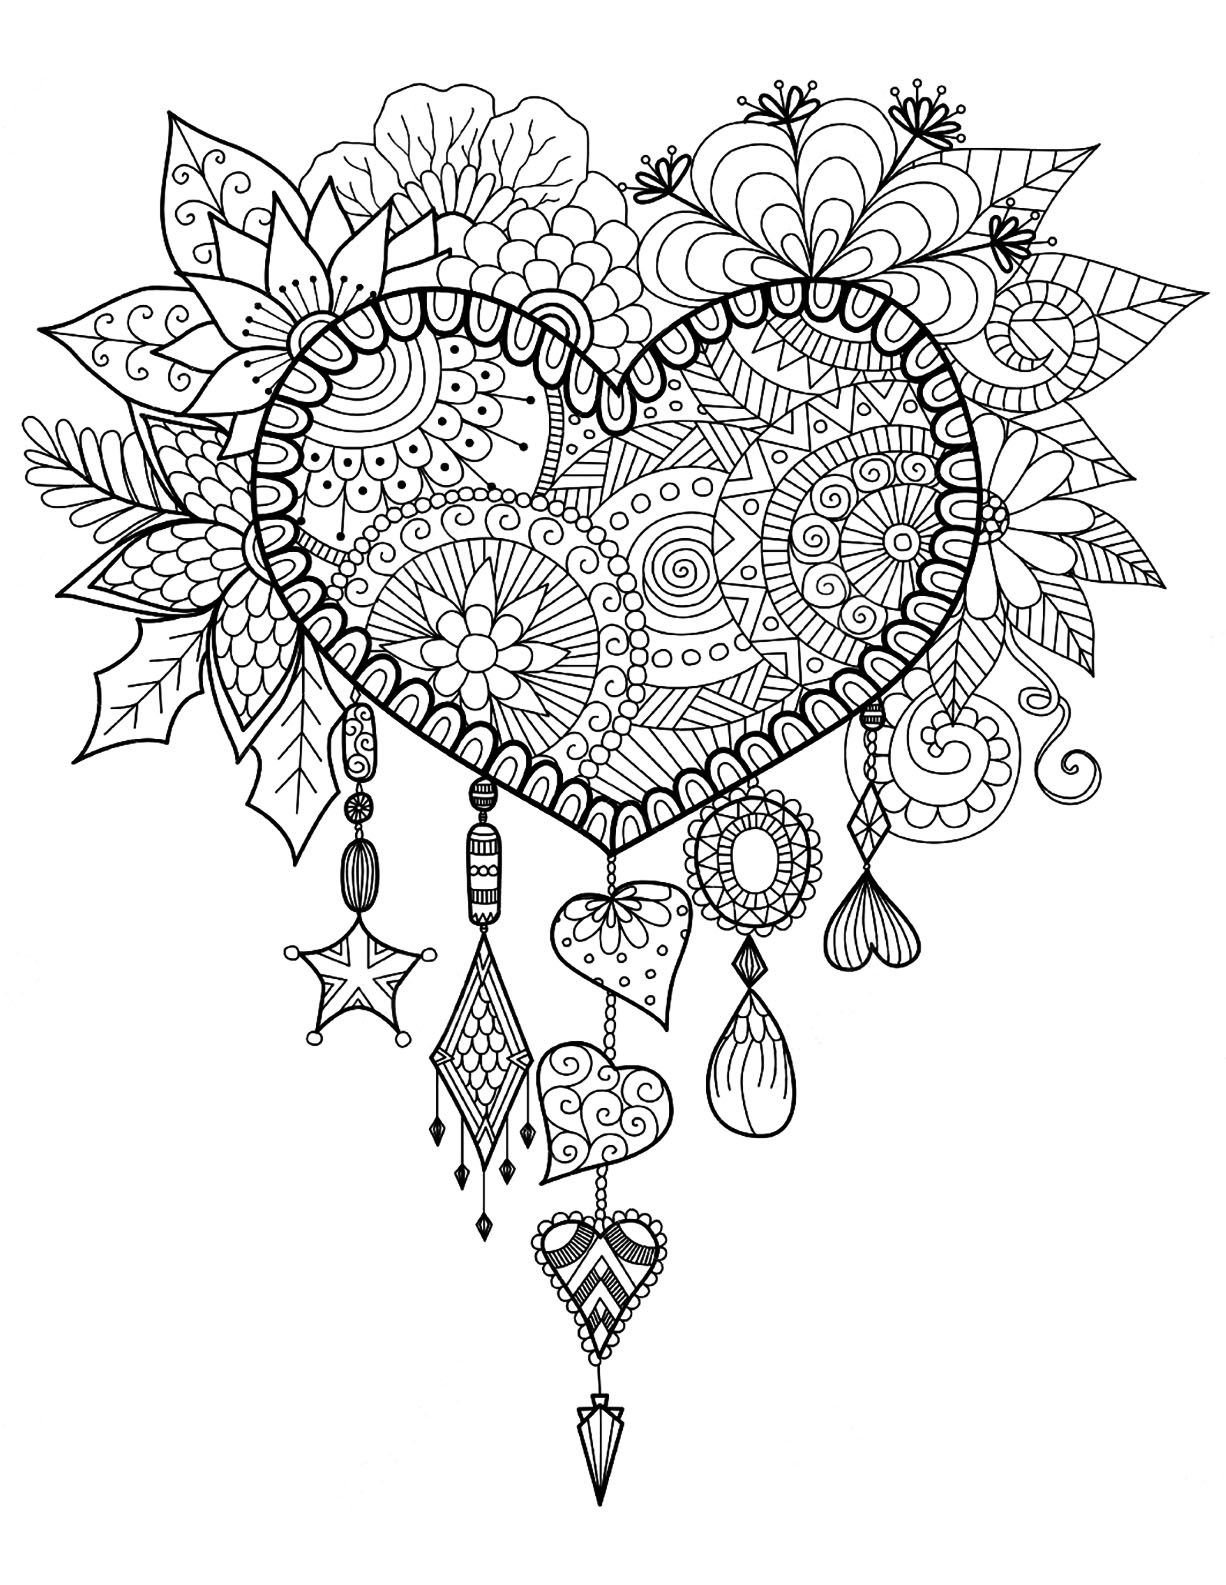 Heart Coloring Pages Just Color Coloring Pages For Adults Of Mandala Coloring Pages Pr Heart Coloring Pages Dream Catcher Coloring Pages Mandala Coloring Pages